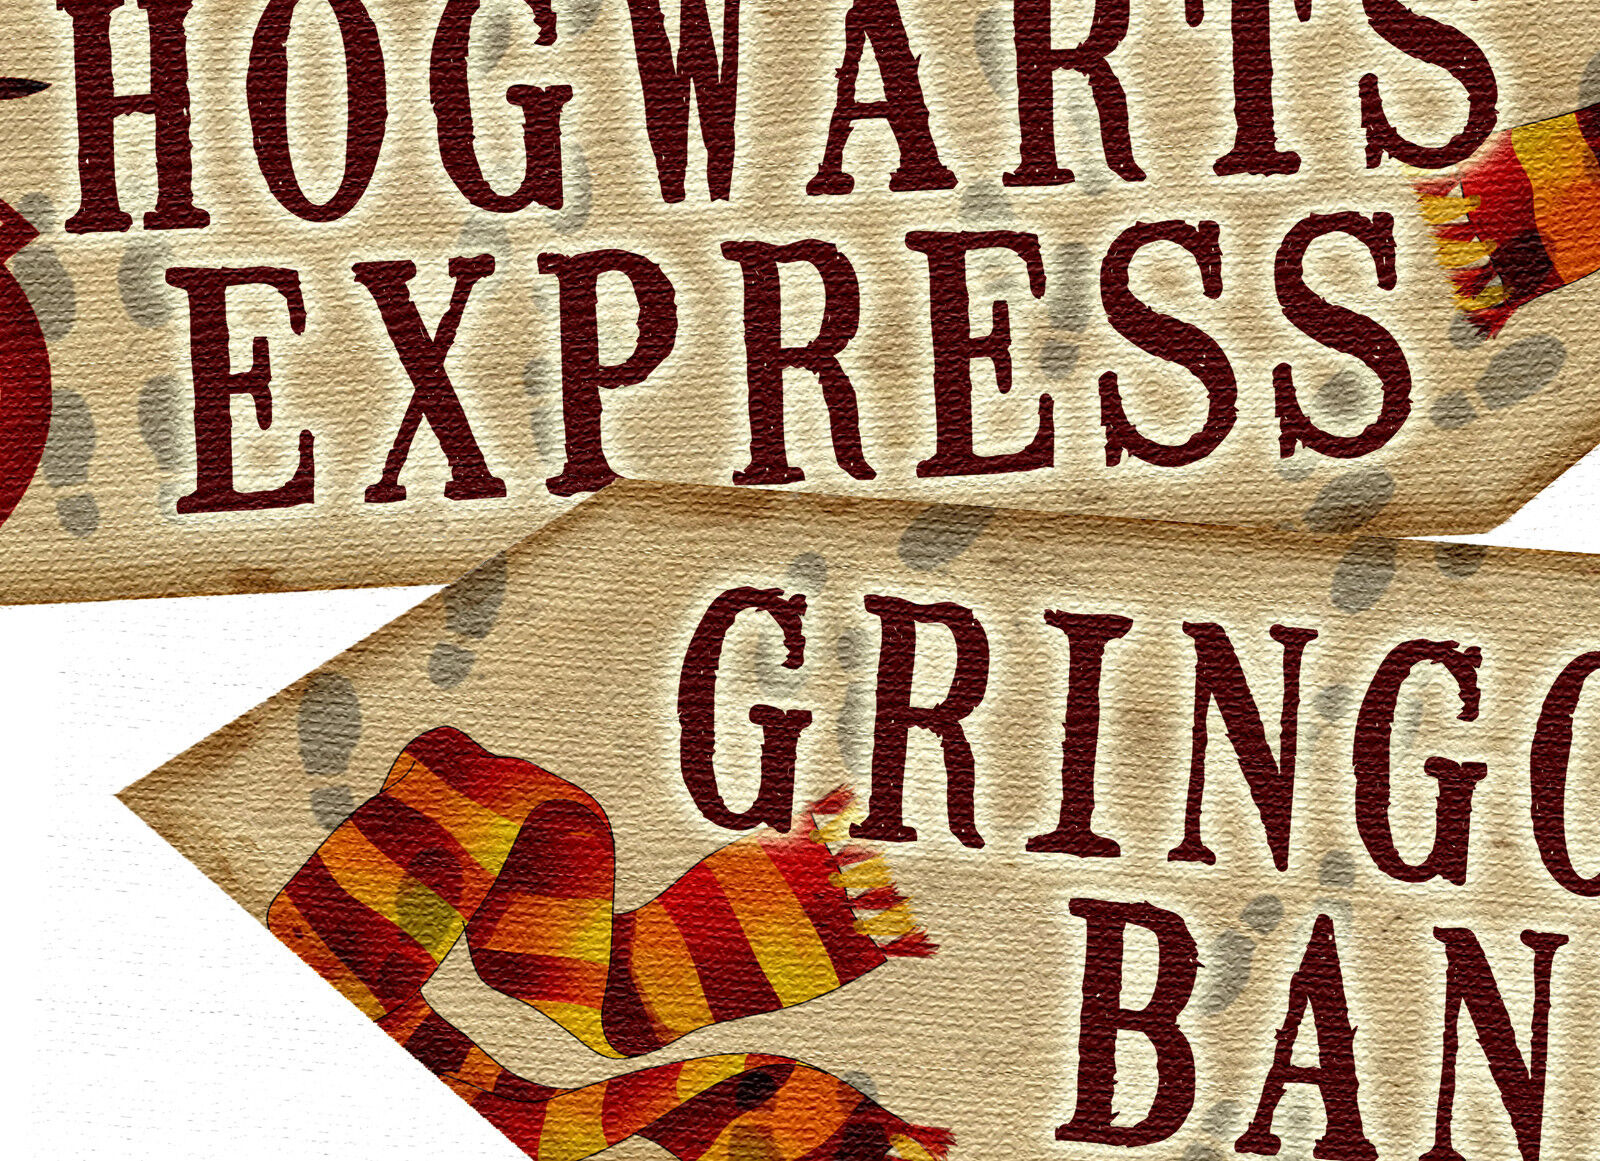 Set of 5 Harry Potter Arrows//Signs Prop PRINTED Party//Room Decoration 350gm Card